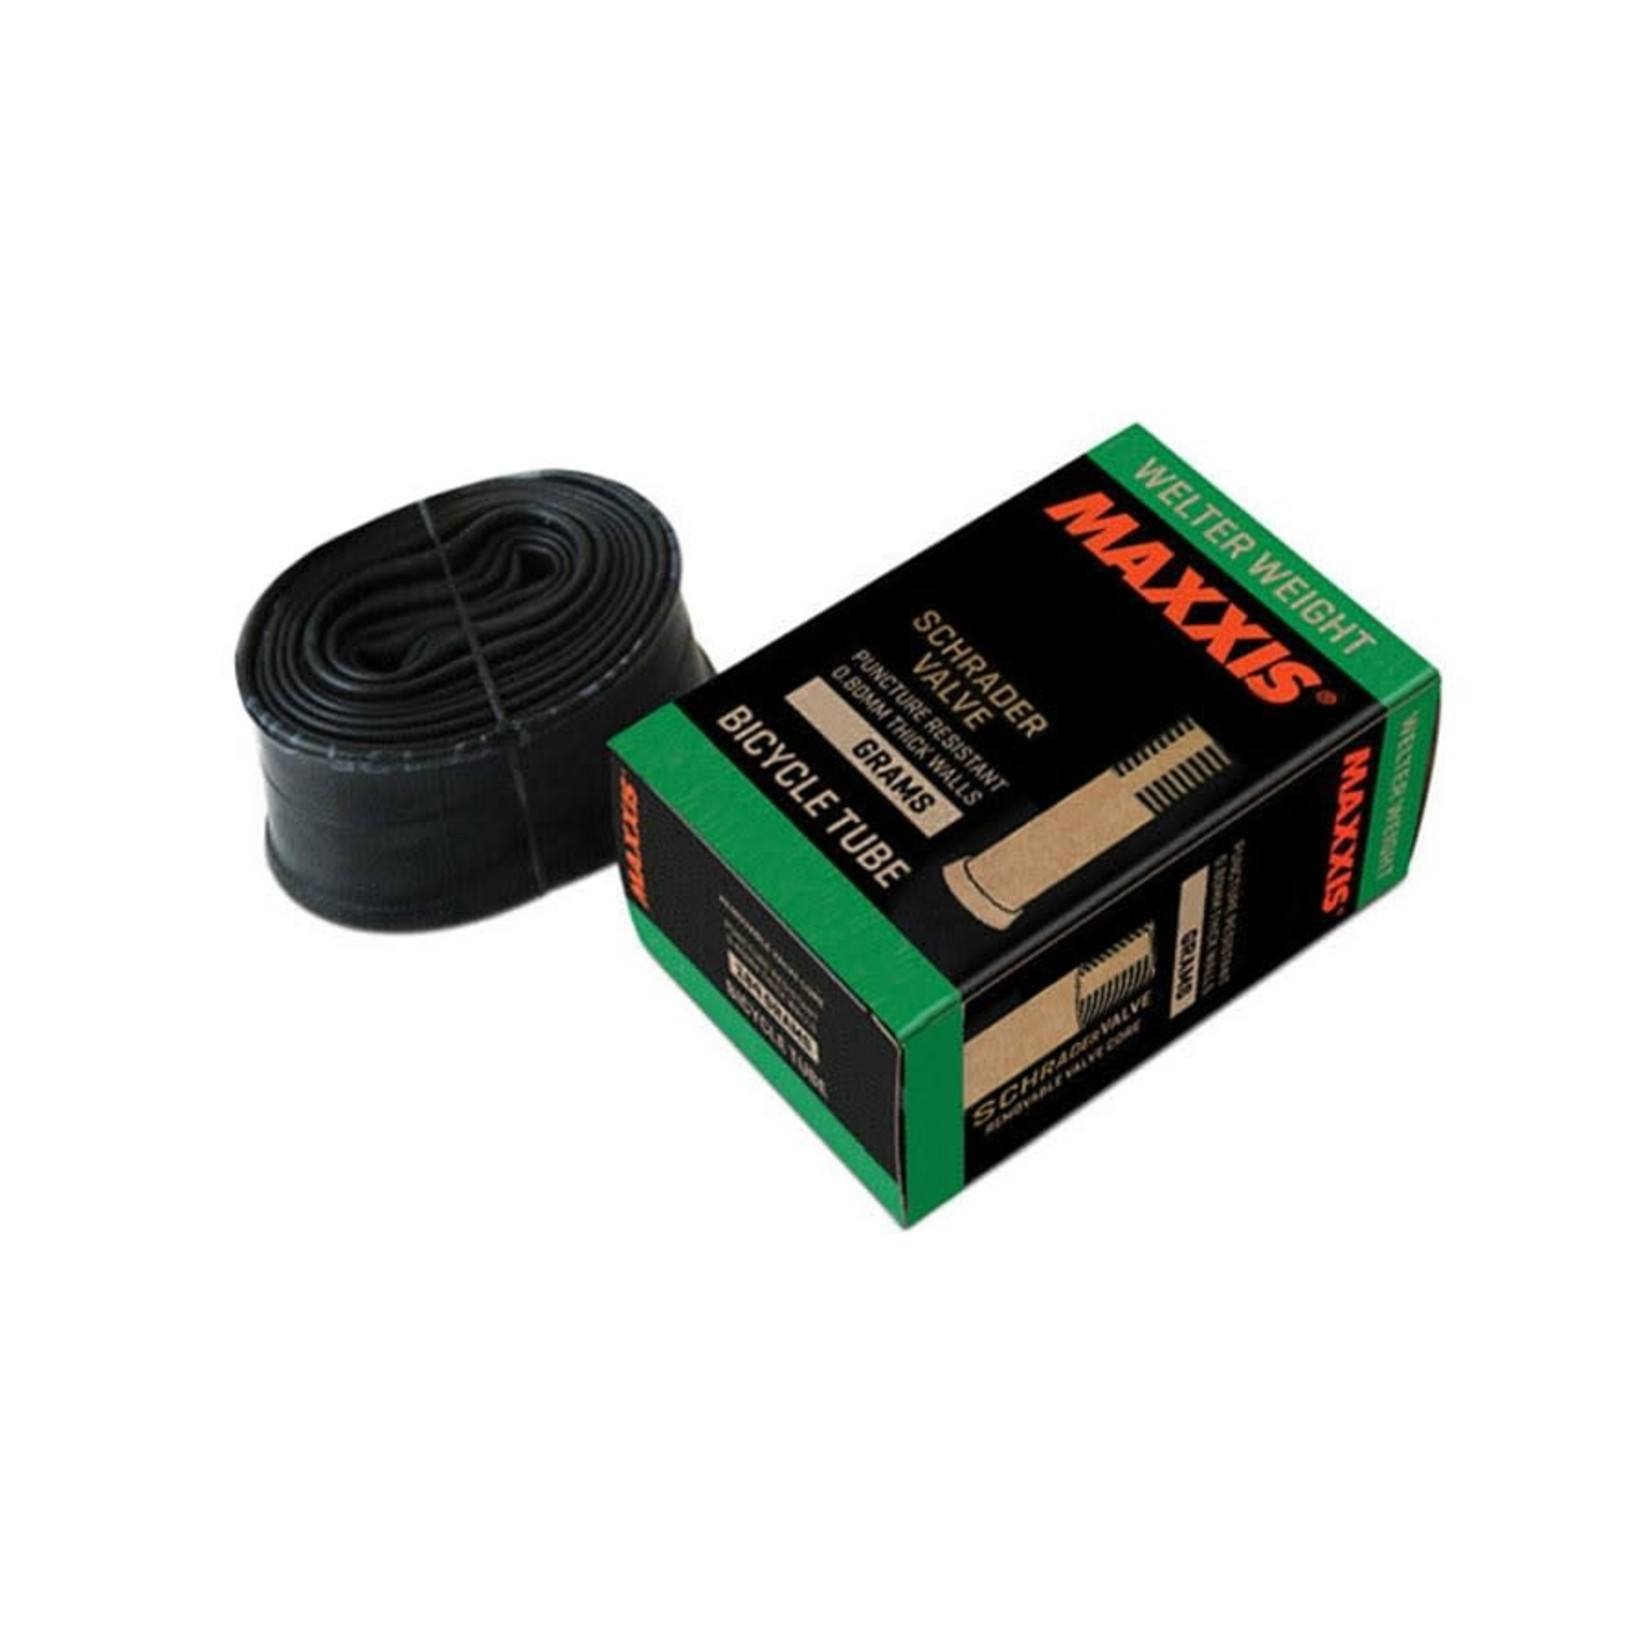 Maxxis Maxxis Welter Weight 26x1.5-2.5 Schrader Tube 48mm Stem